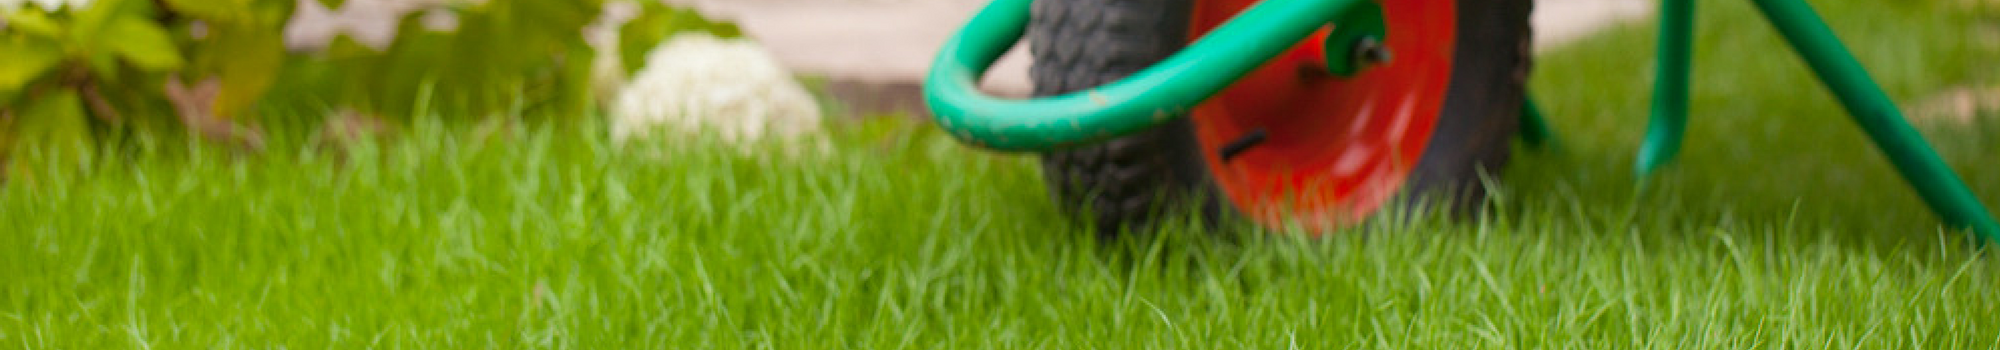 Ottawa | Lawn Care Workers Needed - Spring 2018 - Featured Image